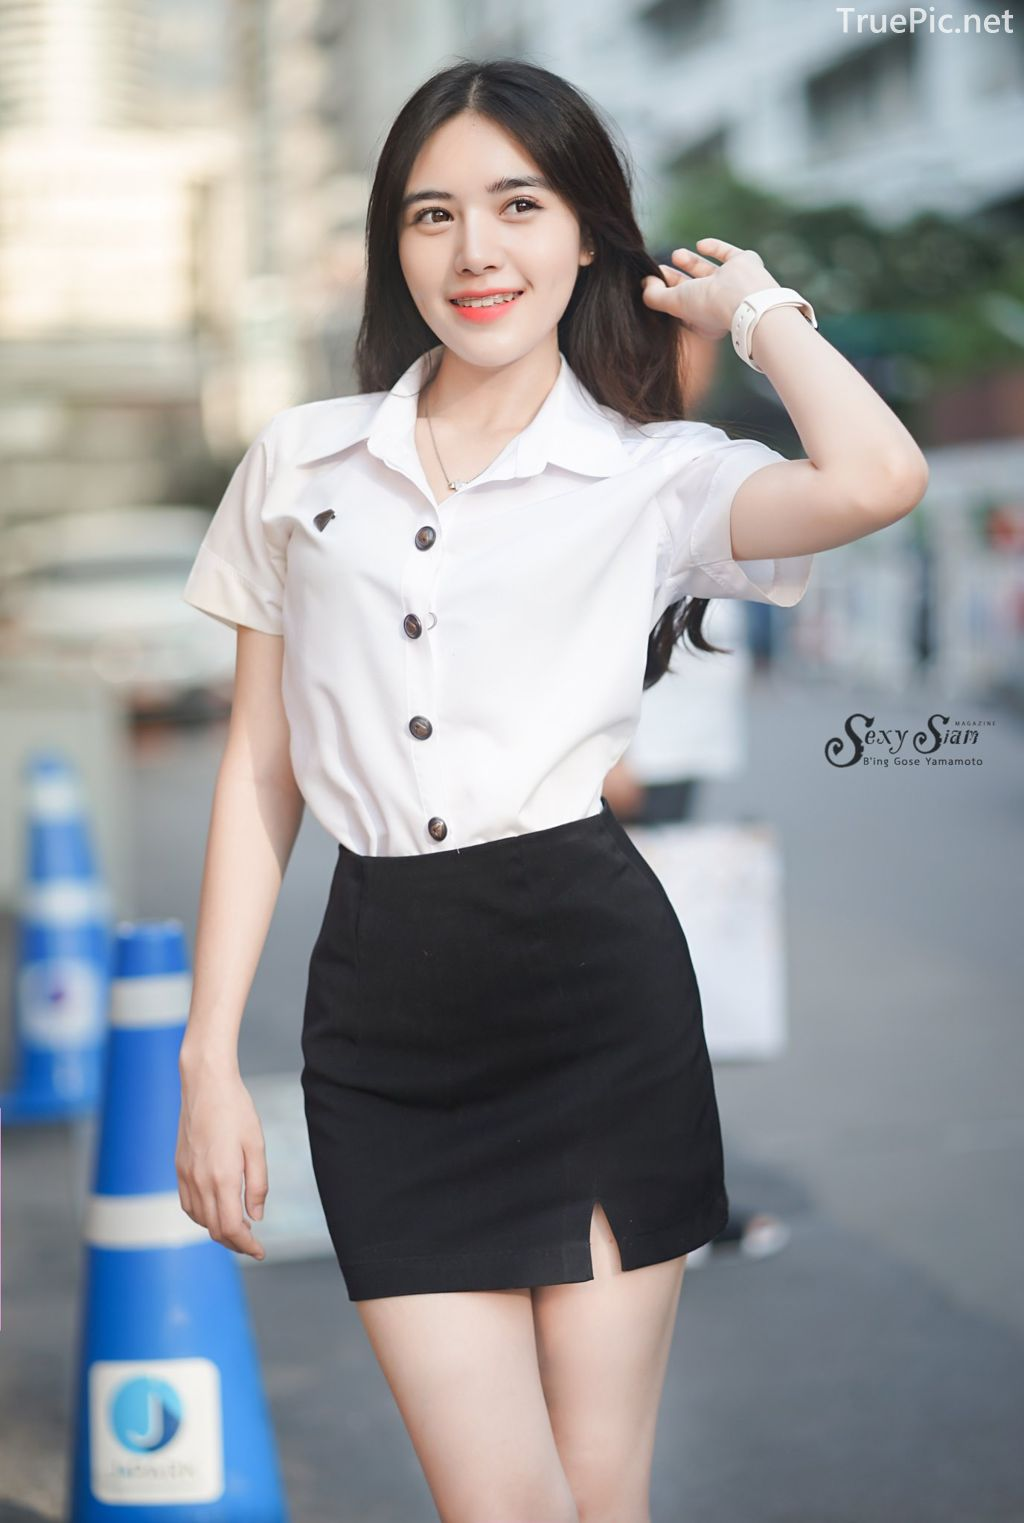 Thailand beautiful girl - Chonticha Chalimewong - Thai Girl Student uniform - TruePic.net - Picture 1